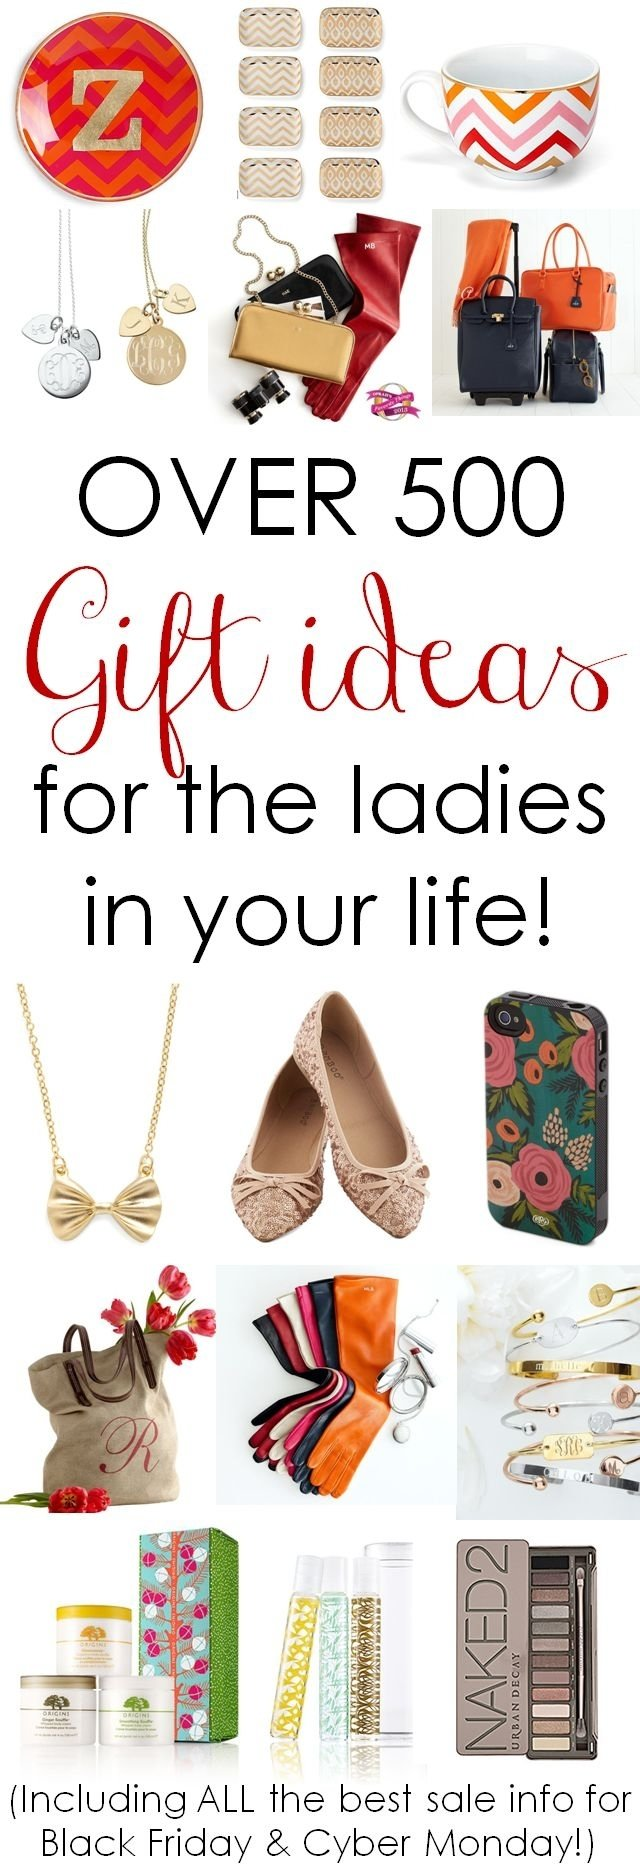 10 Great 2013 Gift Ideas For Women 33 best deals discounts giveaways freebies images on pinterest 3